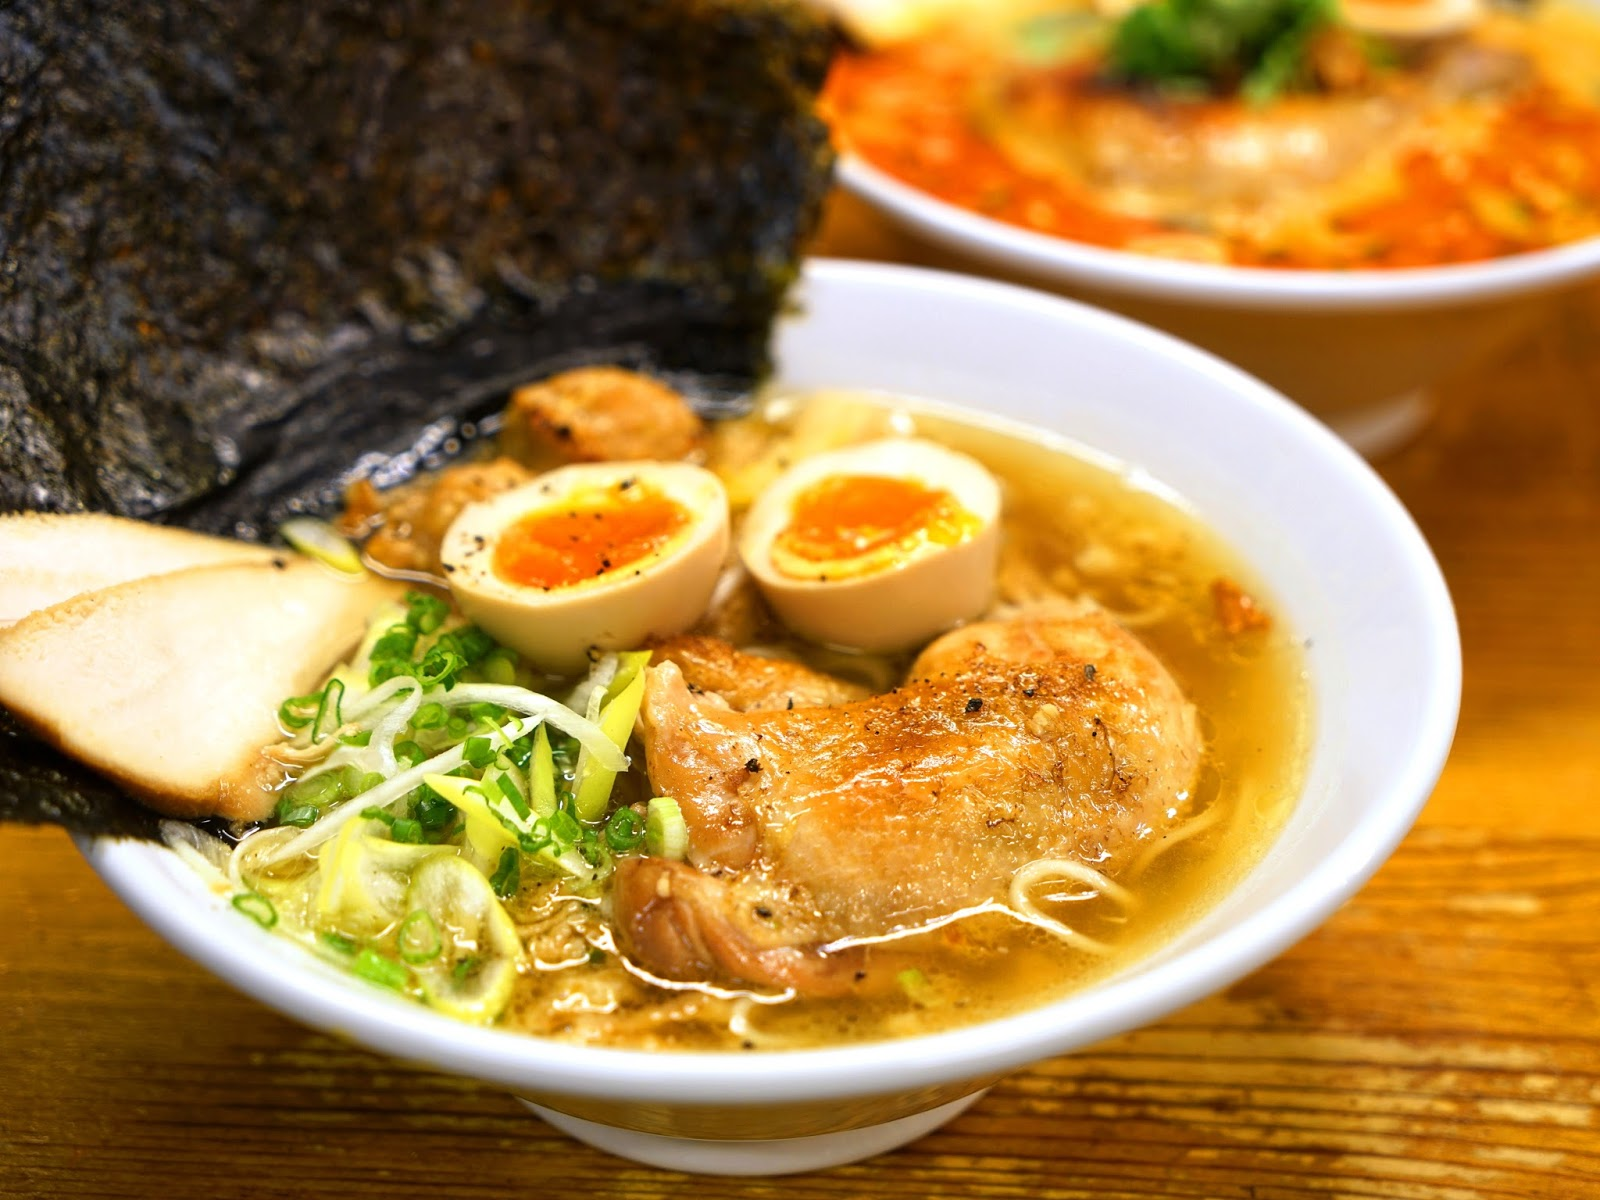 ... or all toppings such as chicken chashu, chicken meatballs and seaweed